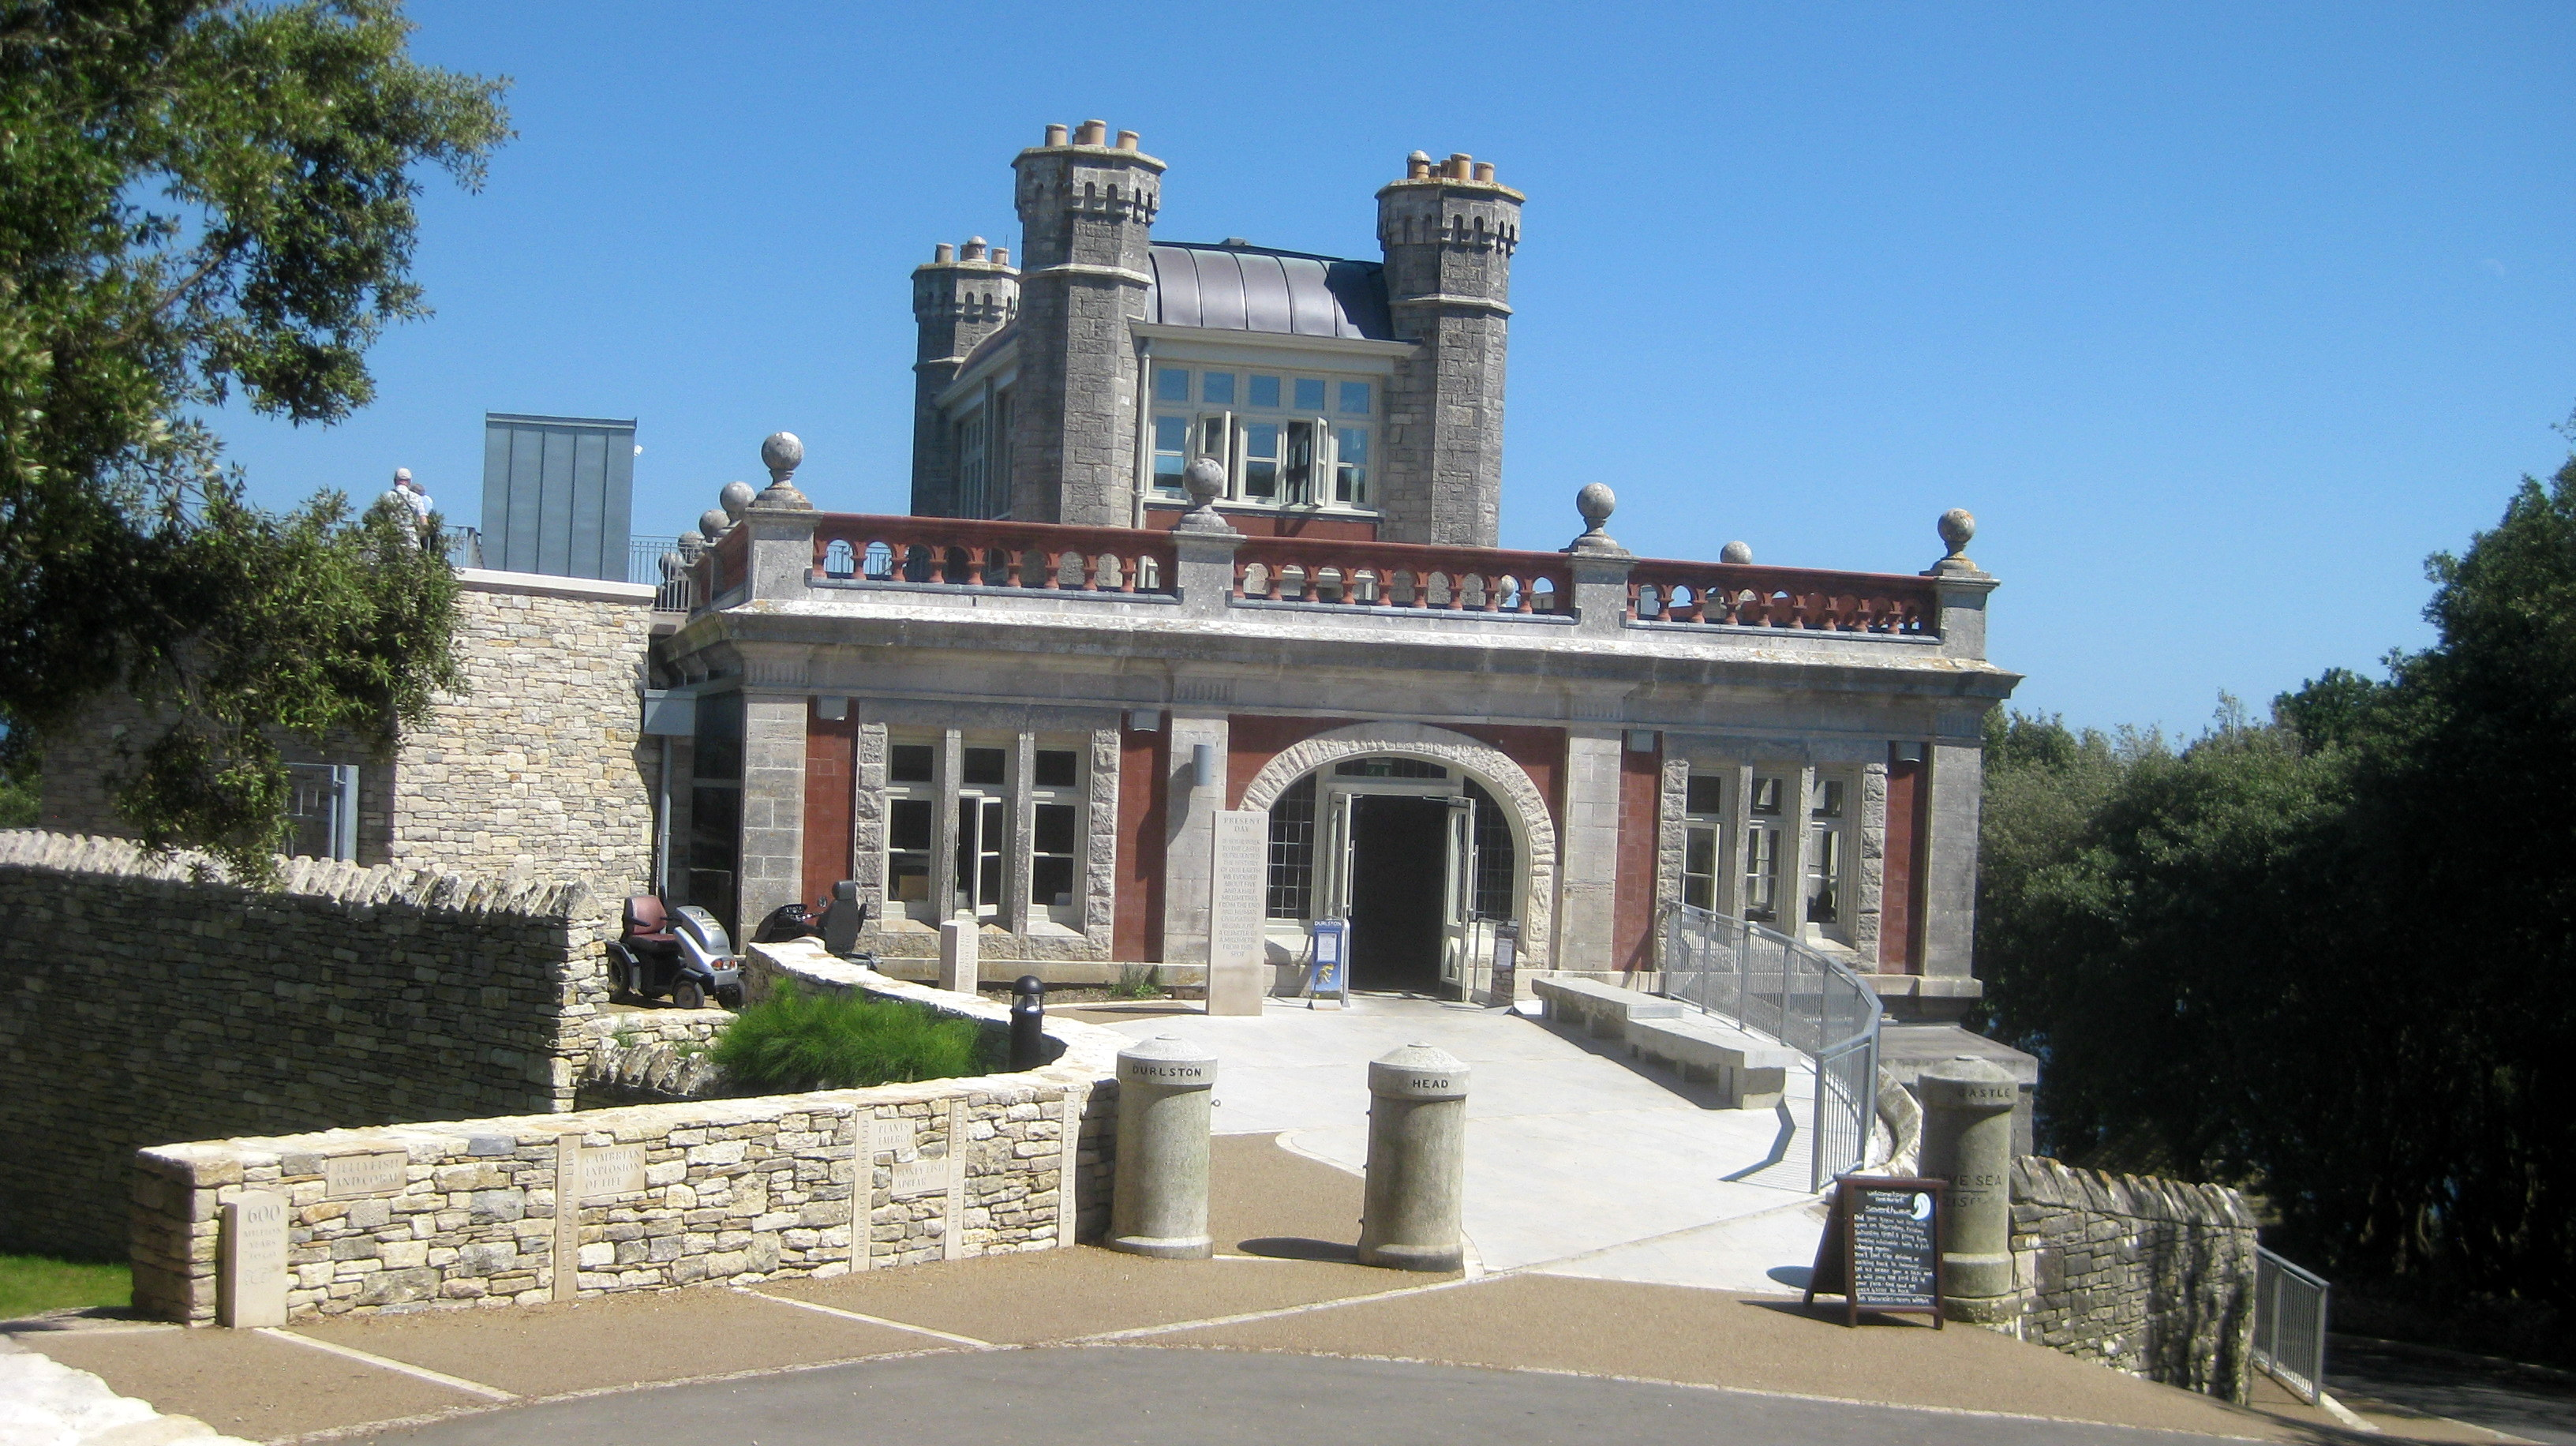 2012-07-25_Durston_Castle_main_entrance